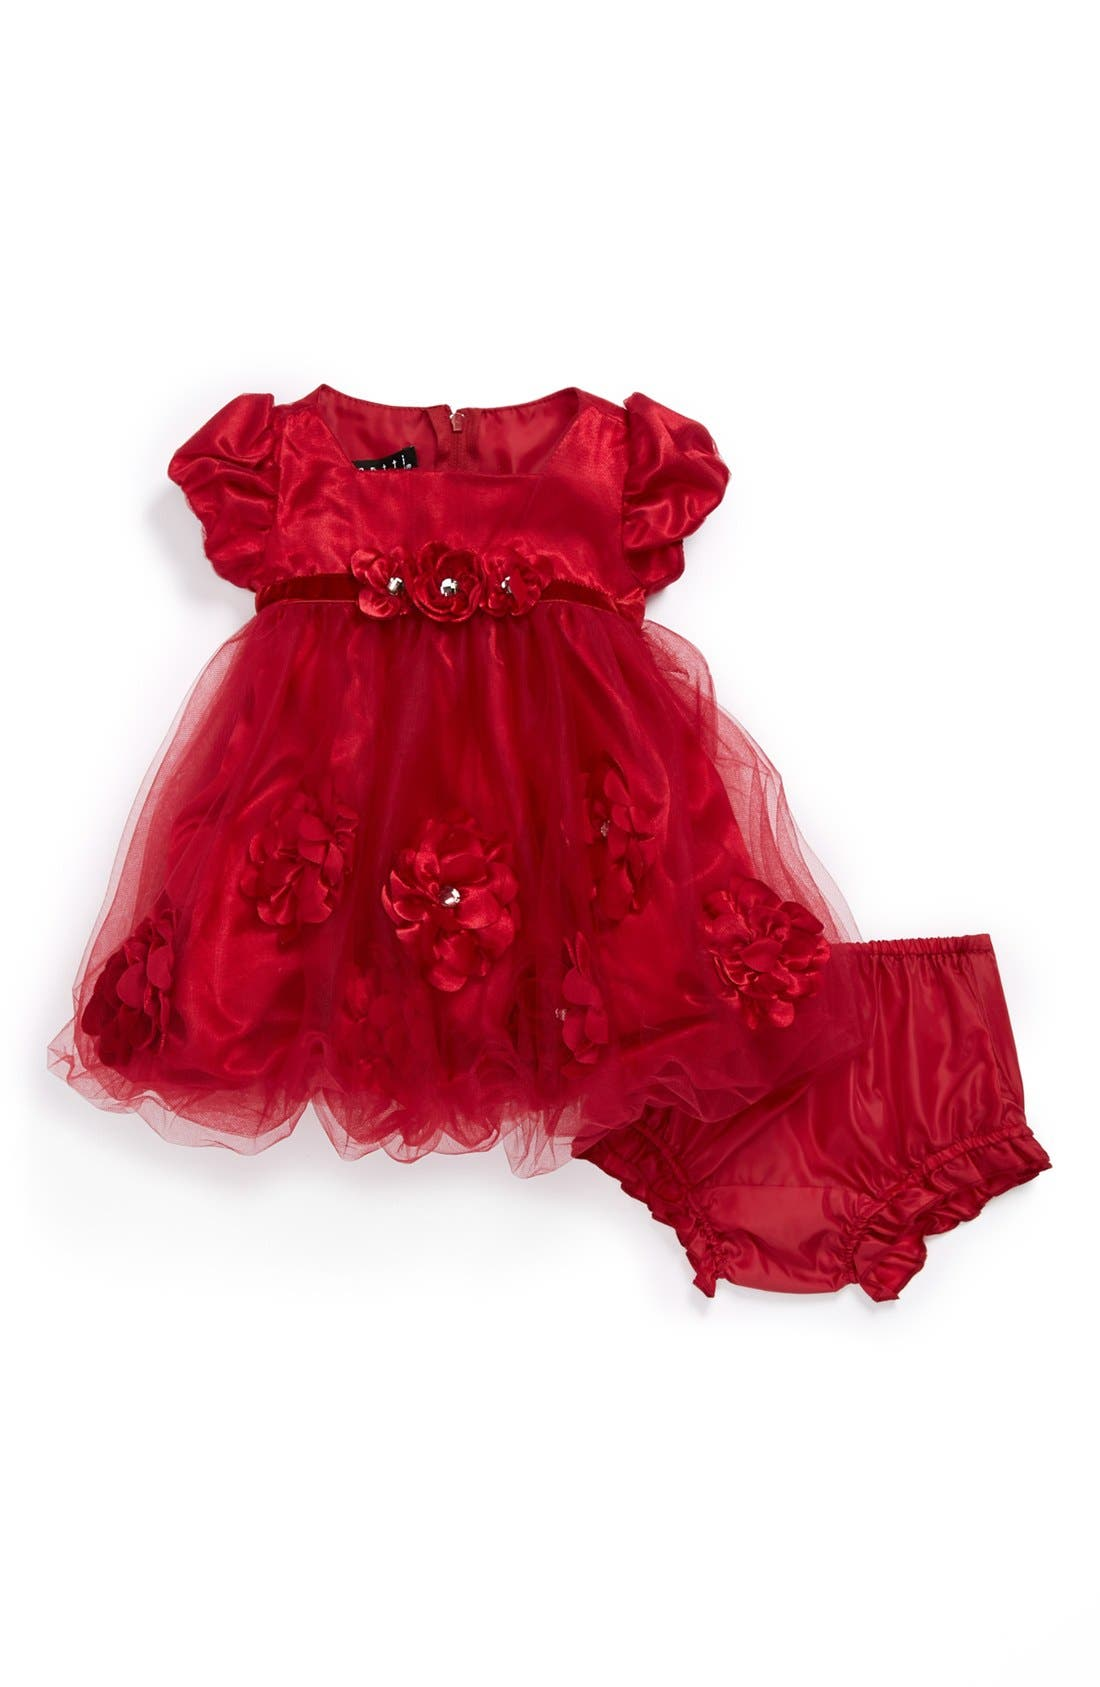 Alternate Image 1 Selected - Biscotti 'Posies' Bubble Dress & Bloomers (Baby Girls)